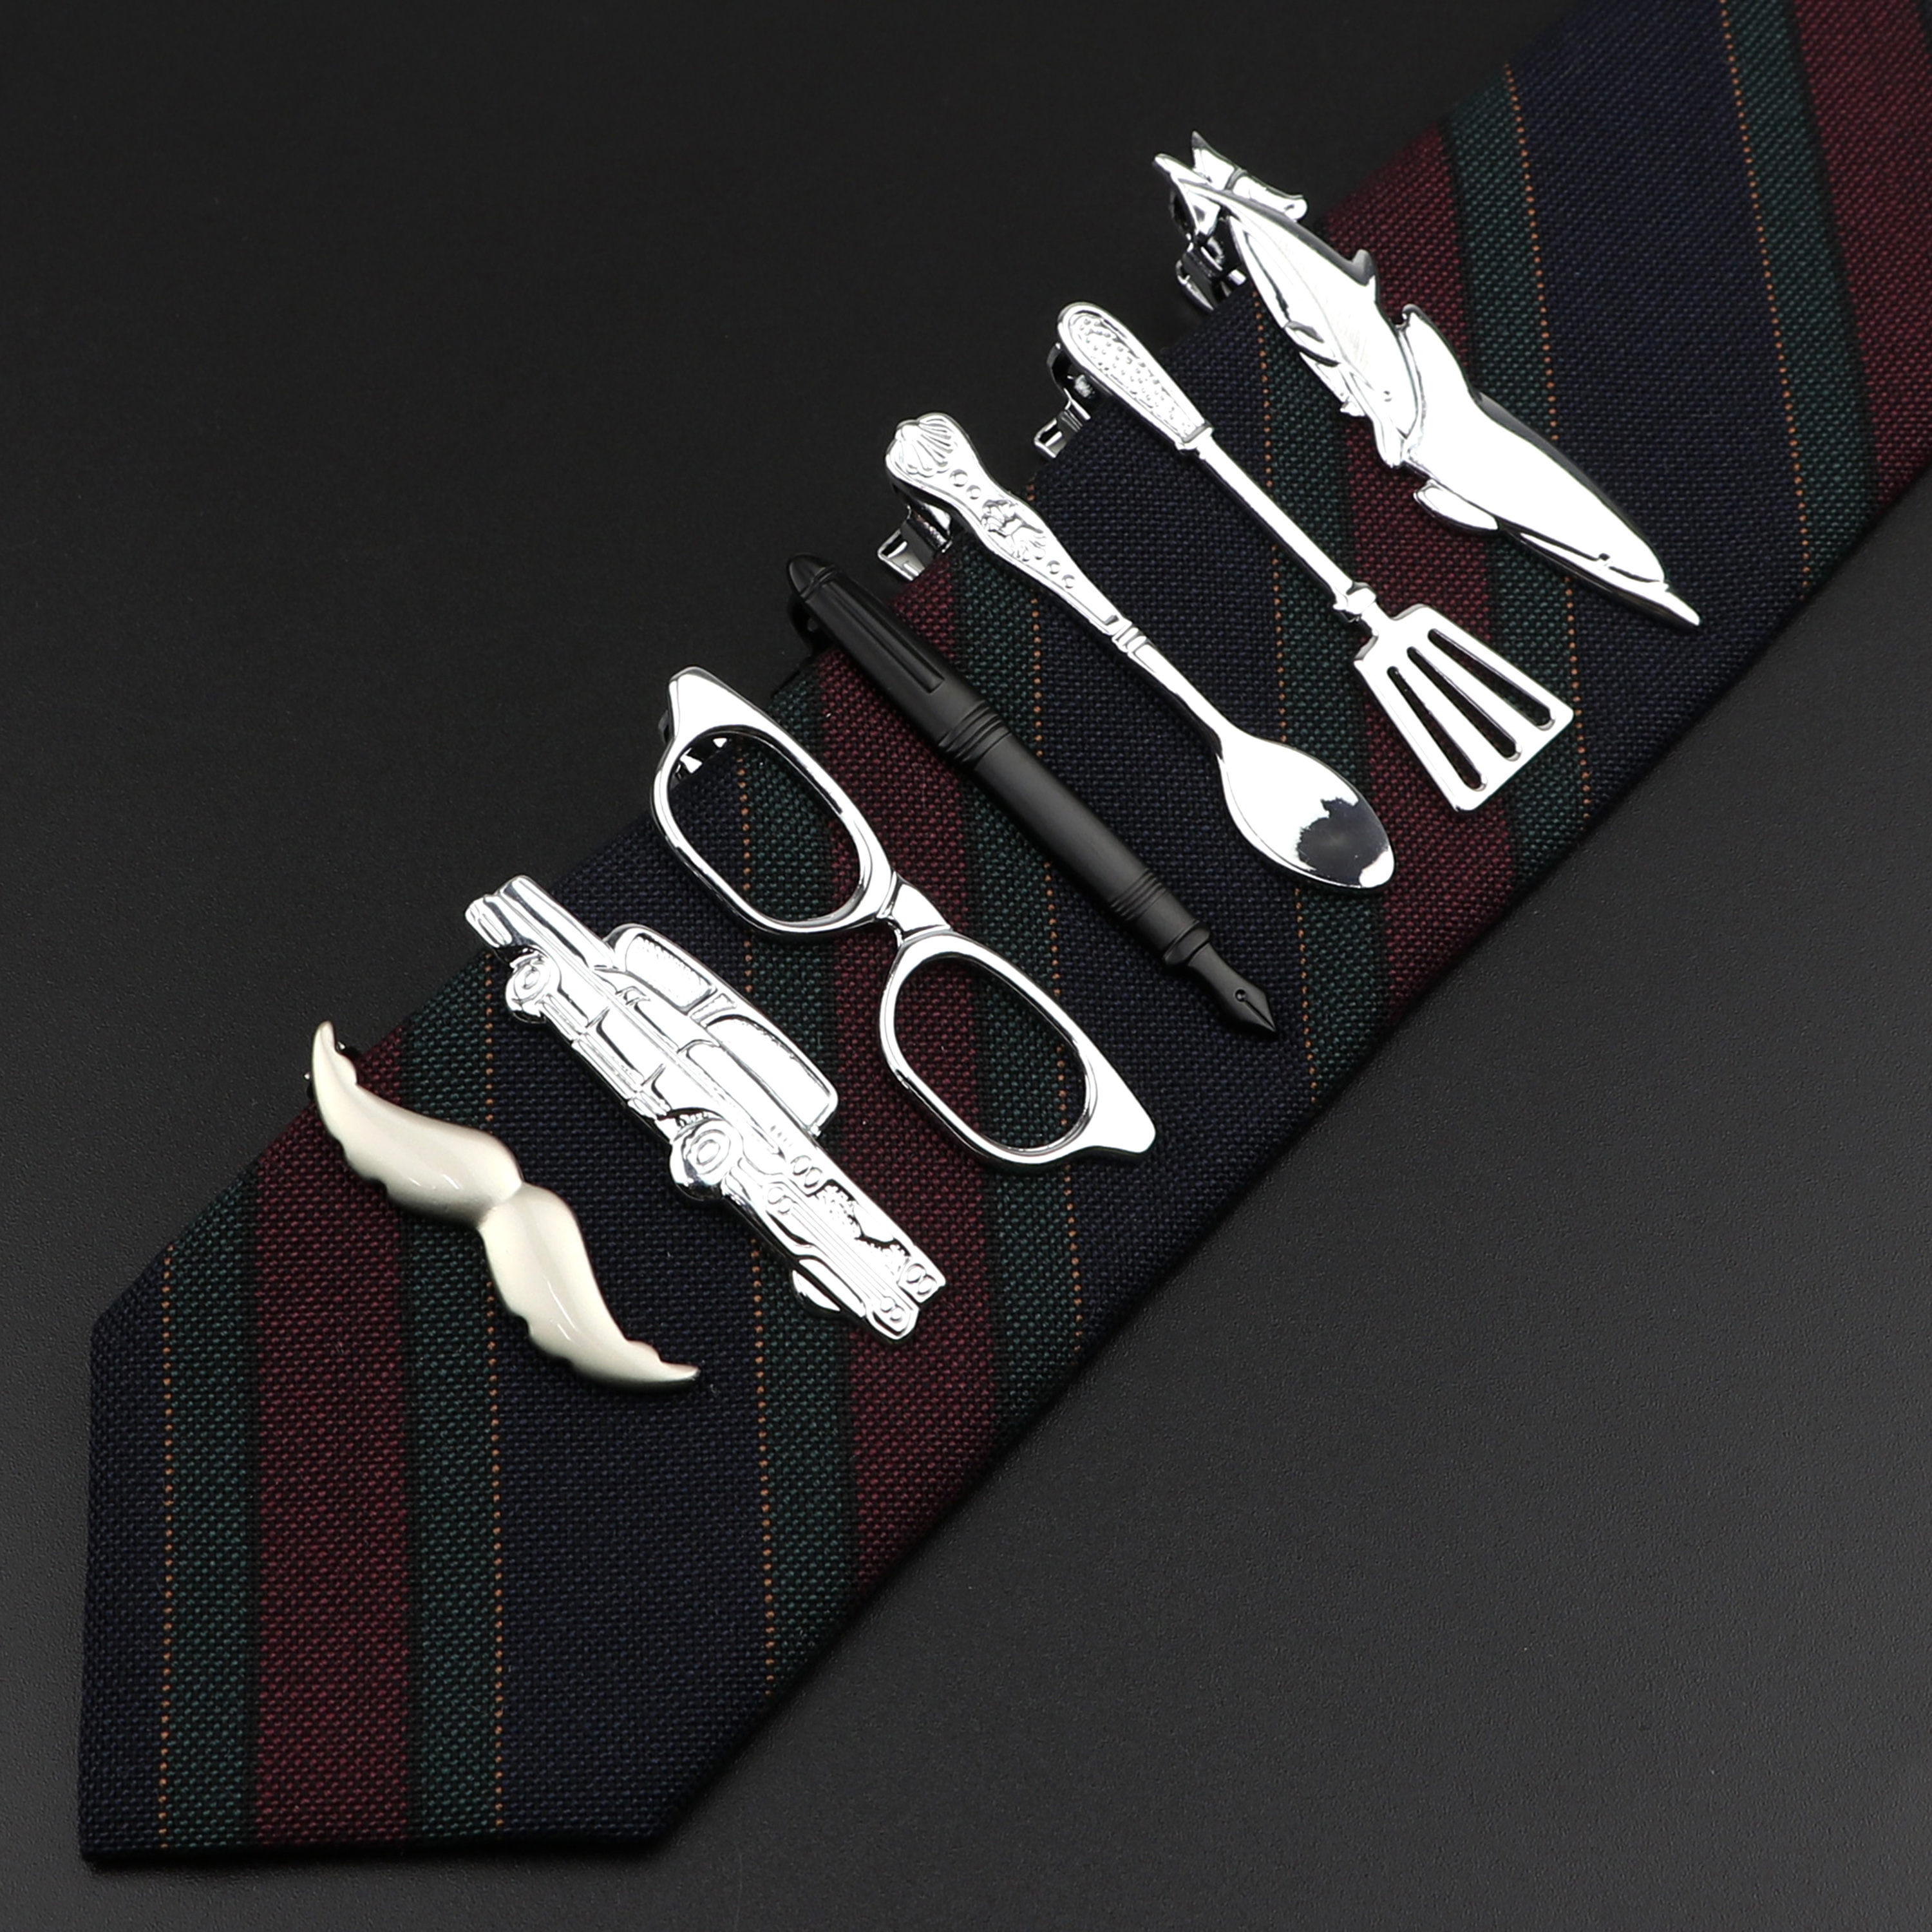 Quality Men's Classic Tie Clip Glasses Fish Airplane Fork Spoon Shape Metal Chrome Stainless Pin Clasp For Business Corbata Gift image